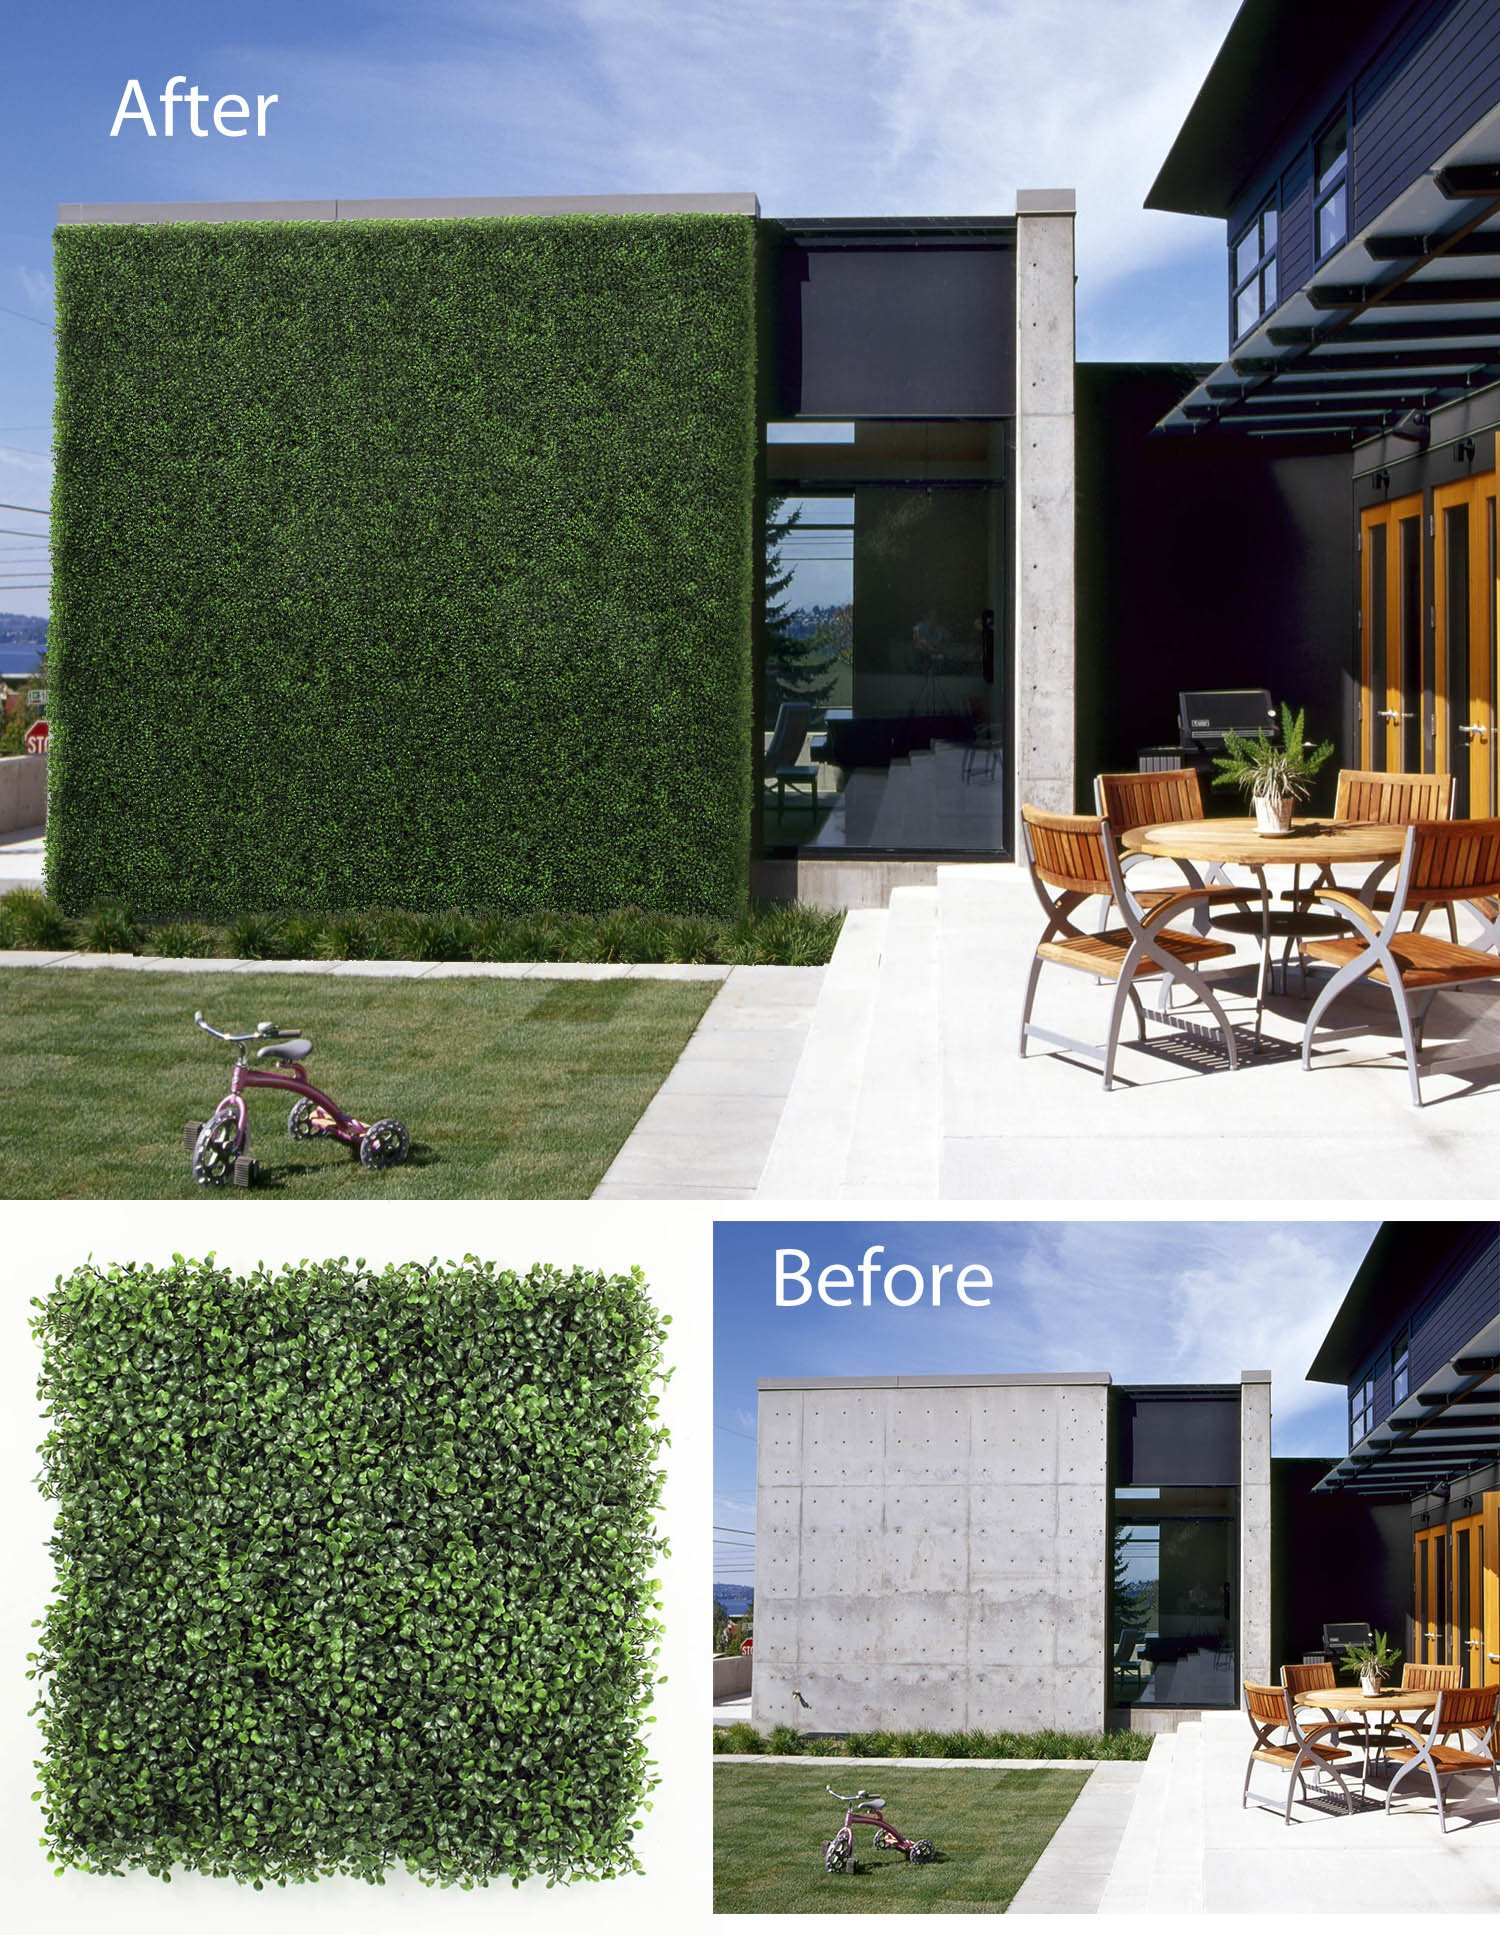 ULAND Artificial Boxwood Topiary Hedge Plant Sound Diffuser Privacy Fence Screen Greenery Wall for Both Outdoor or Indoor, Outdoor Artificial Plant Covers 16 SQ feet 6 Panels (20'' L x 20'' H)